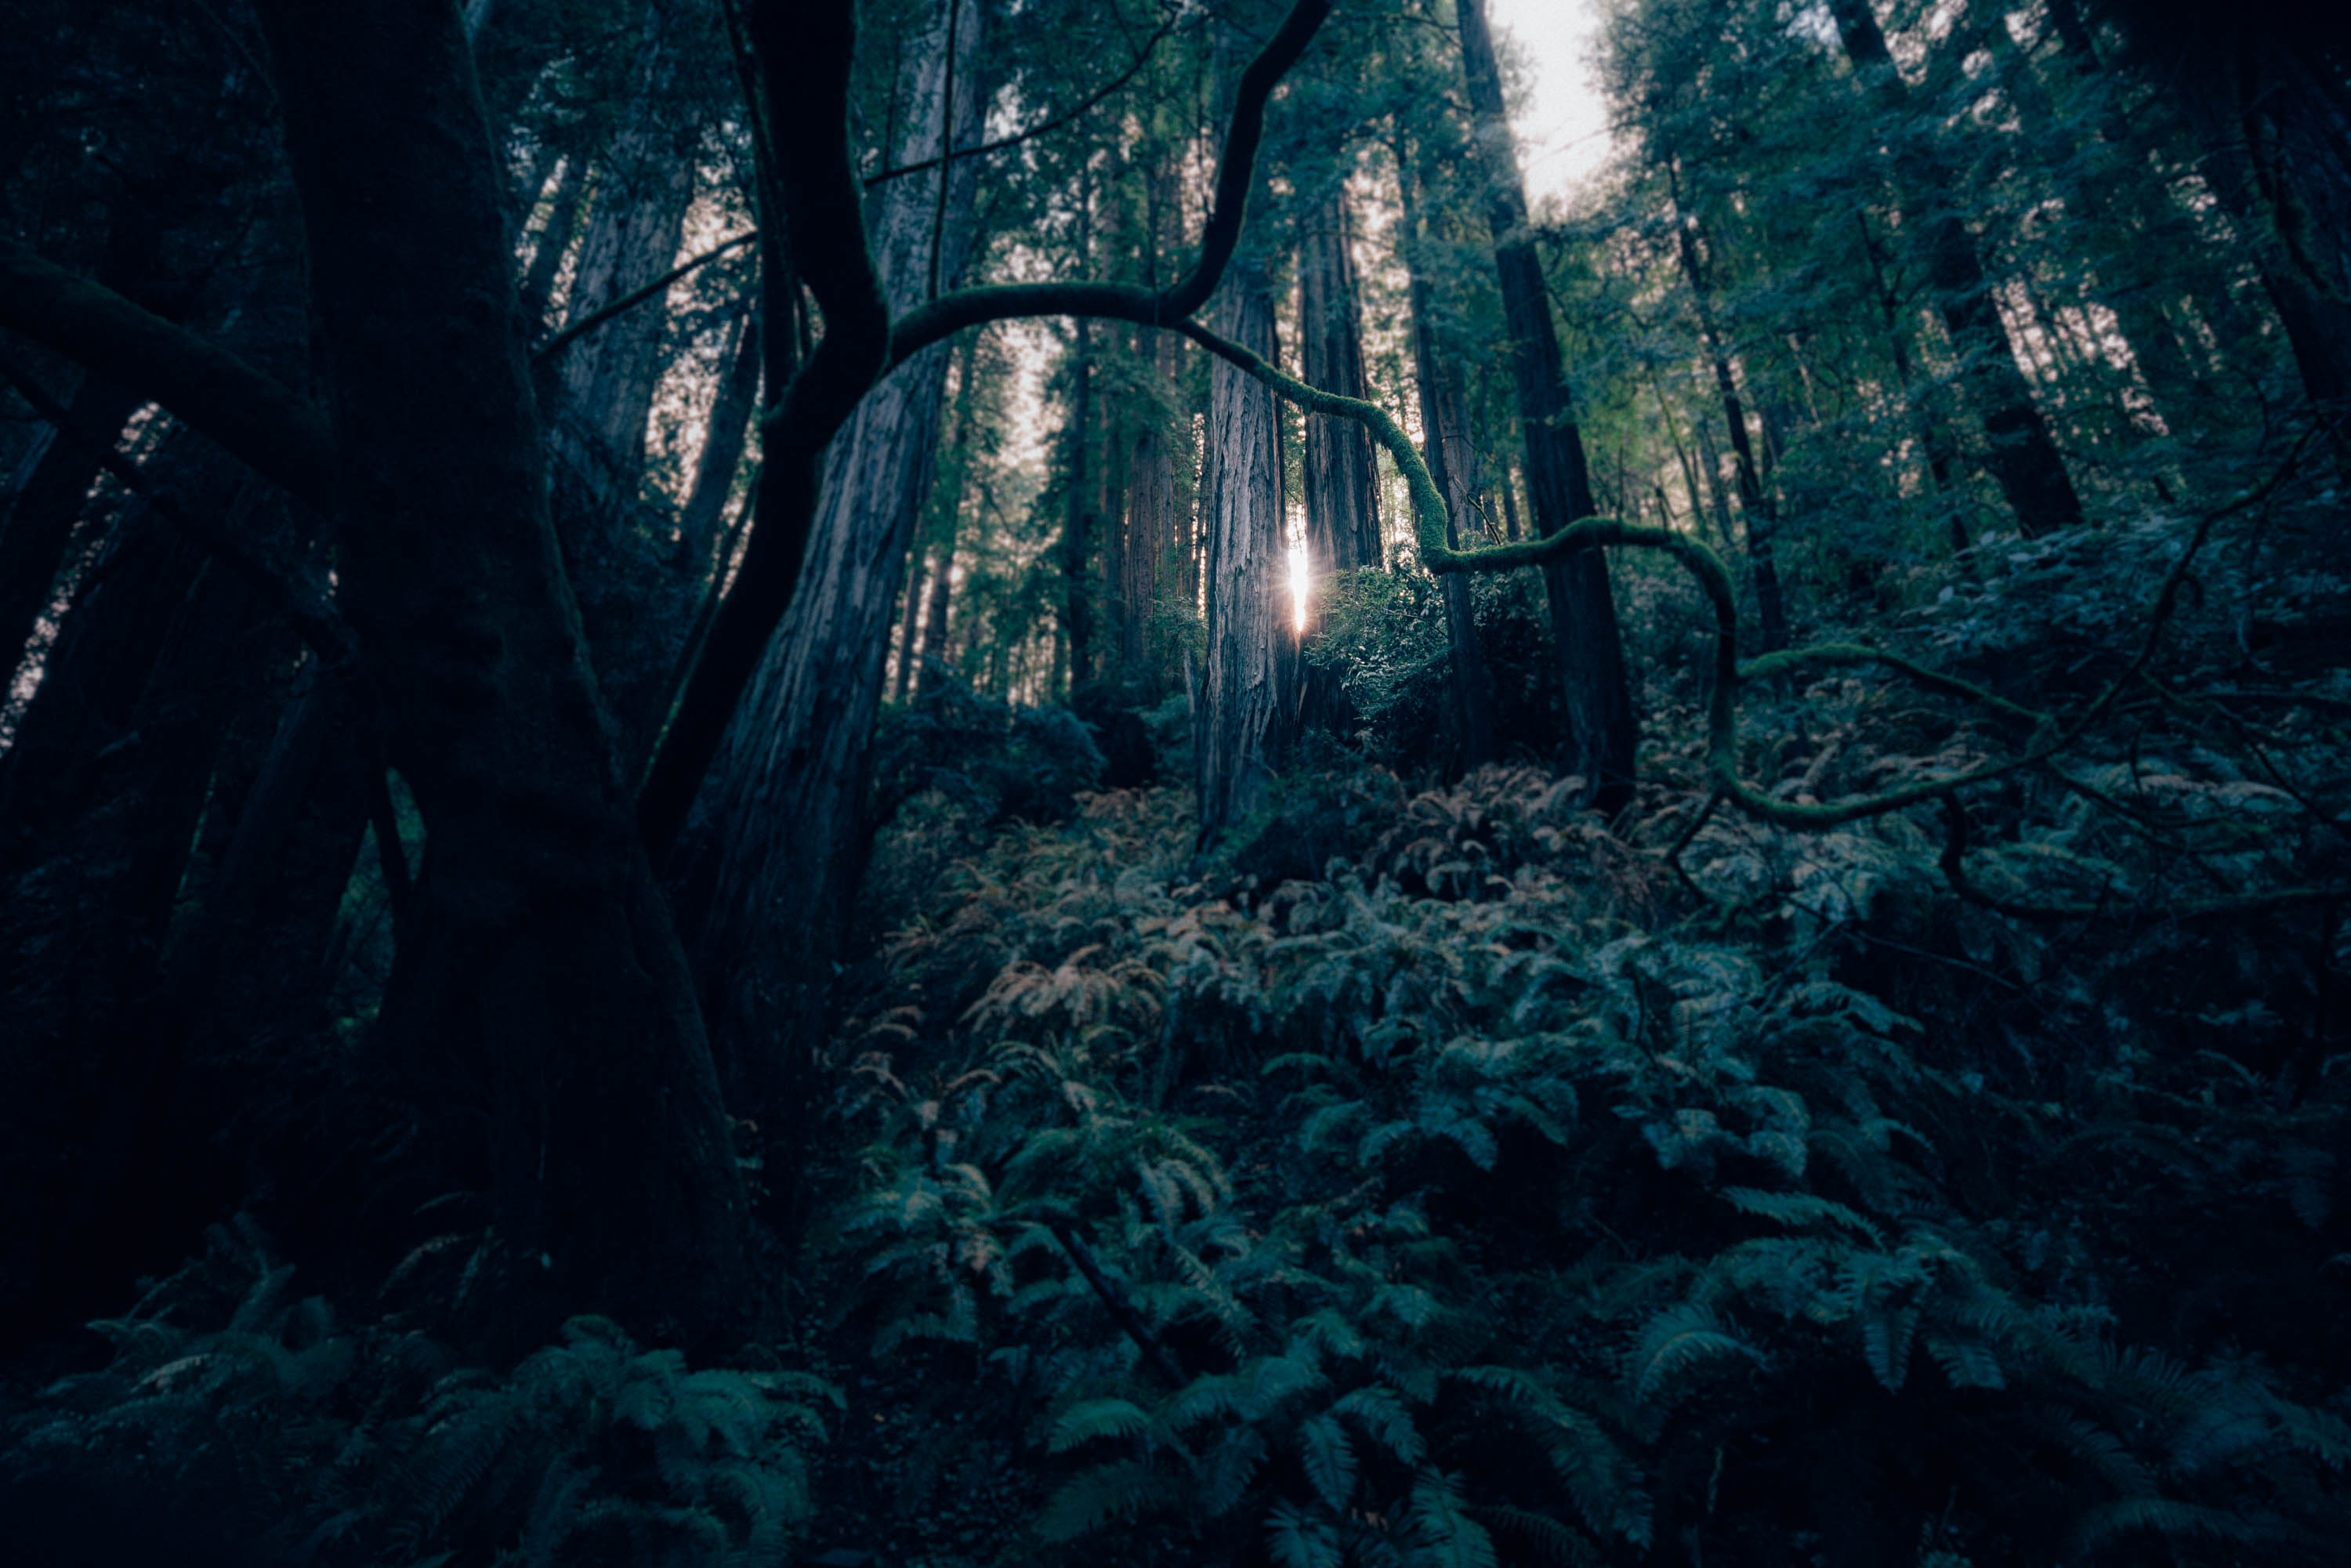 A green, mossy forest with the sunlight leaking through in San Francisco